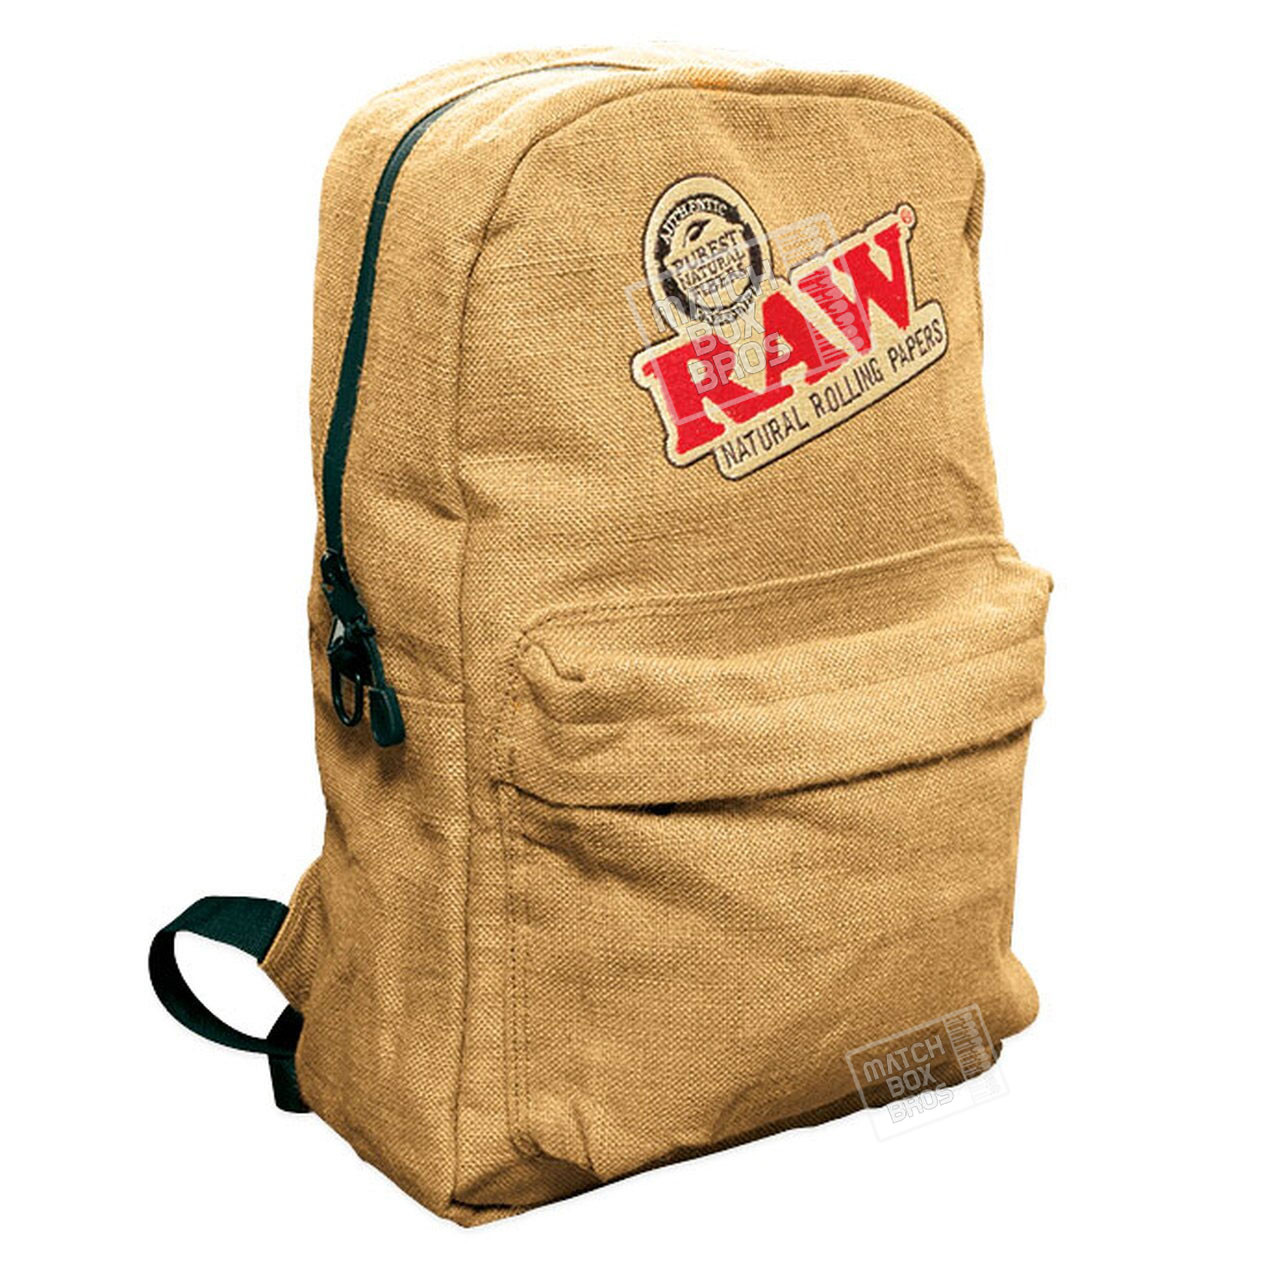 RAW Burlap Backpack – Lower Key Edition